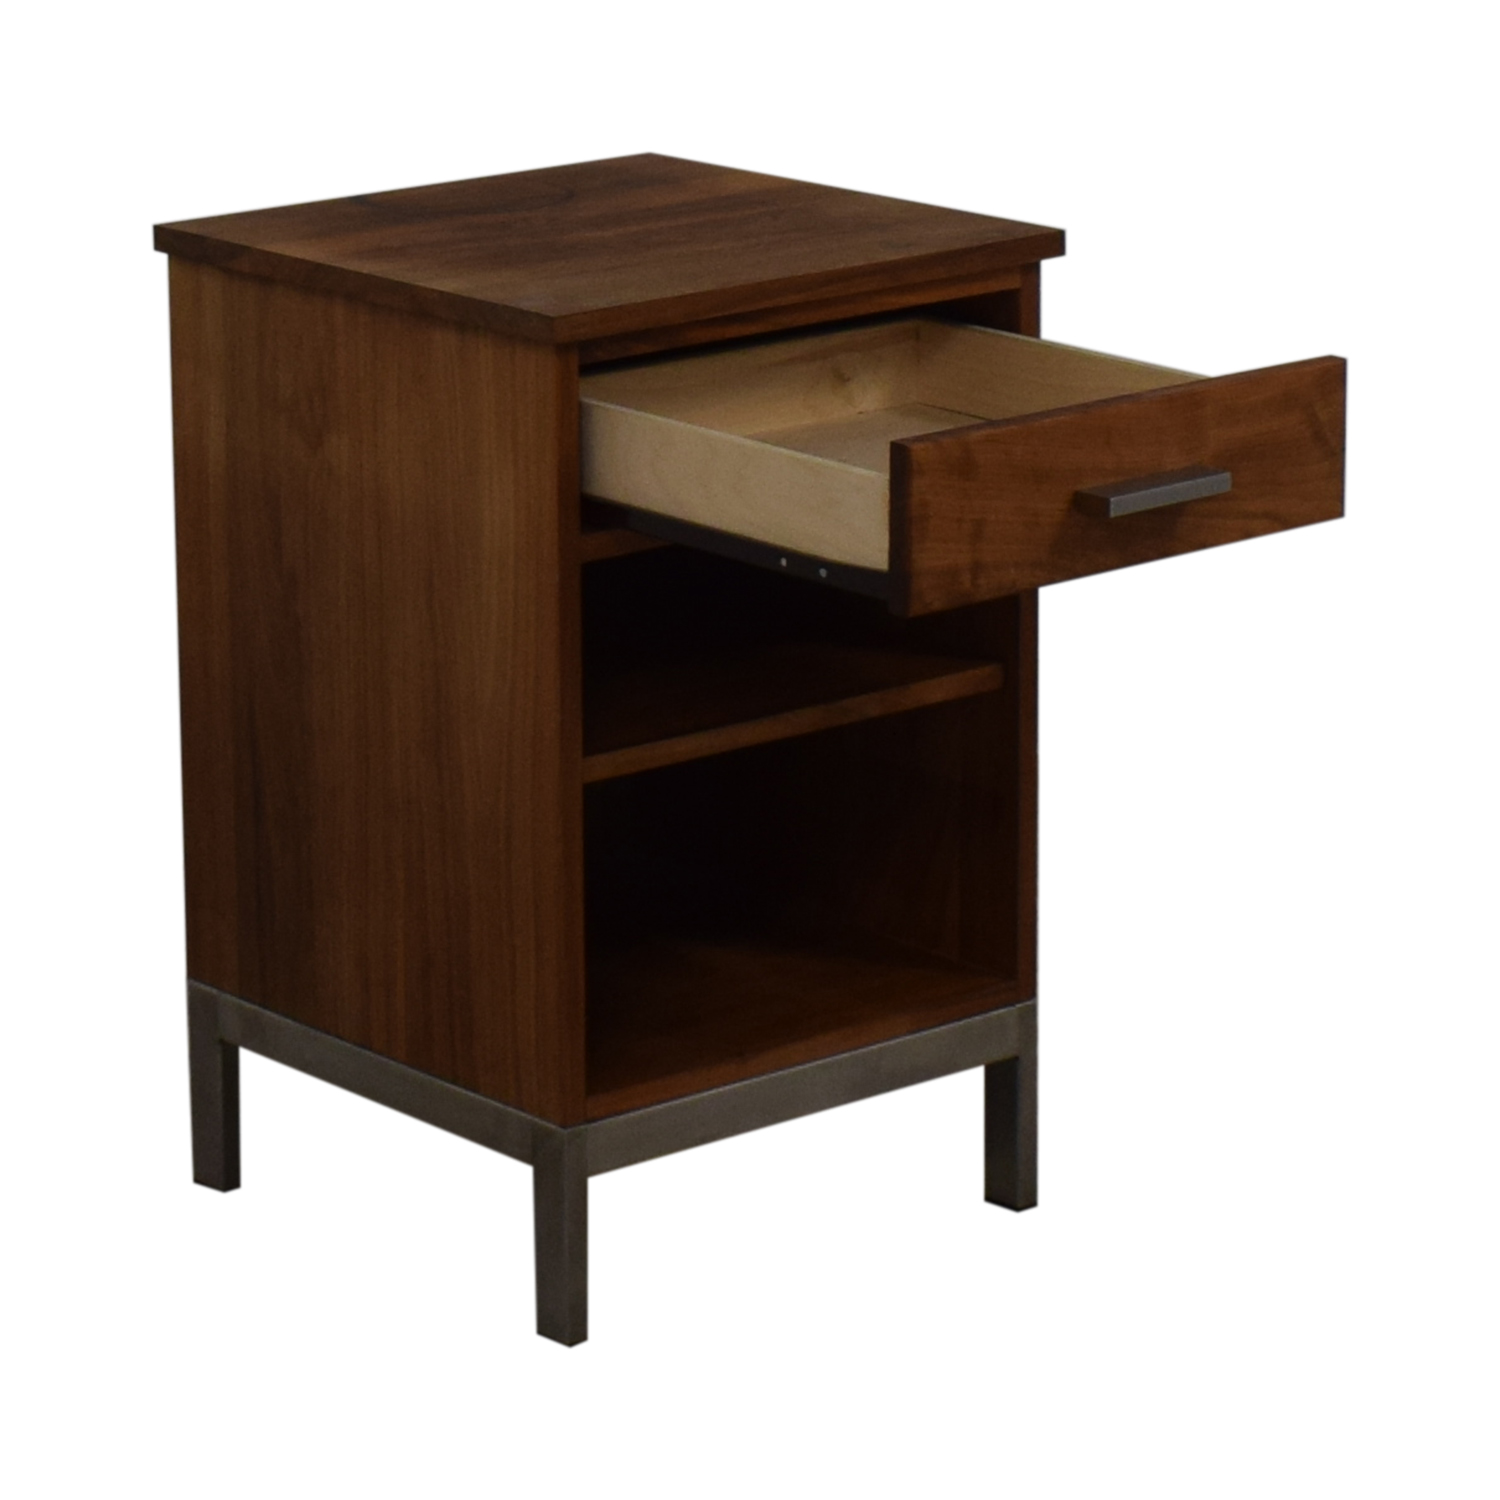 Room & Board Room & Board Nightstand used